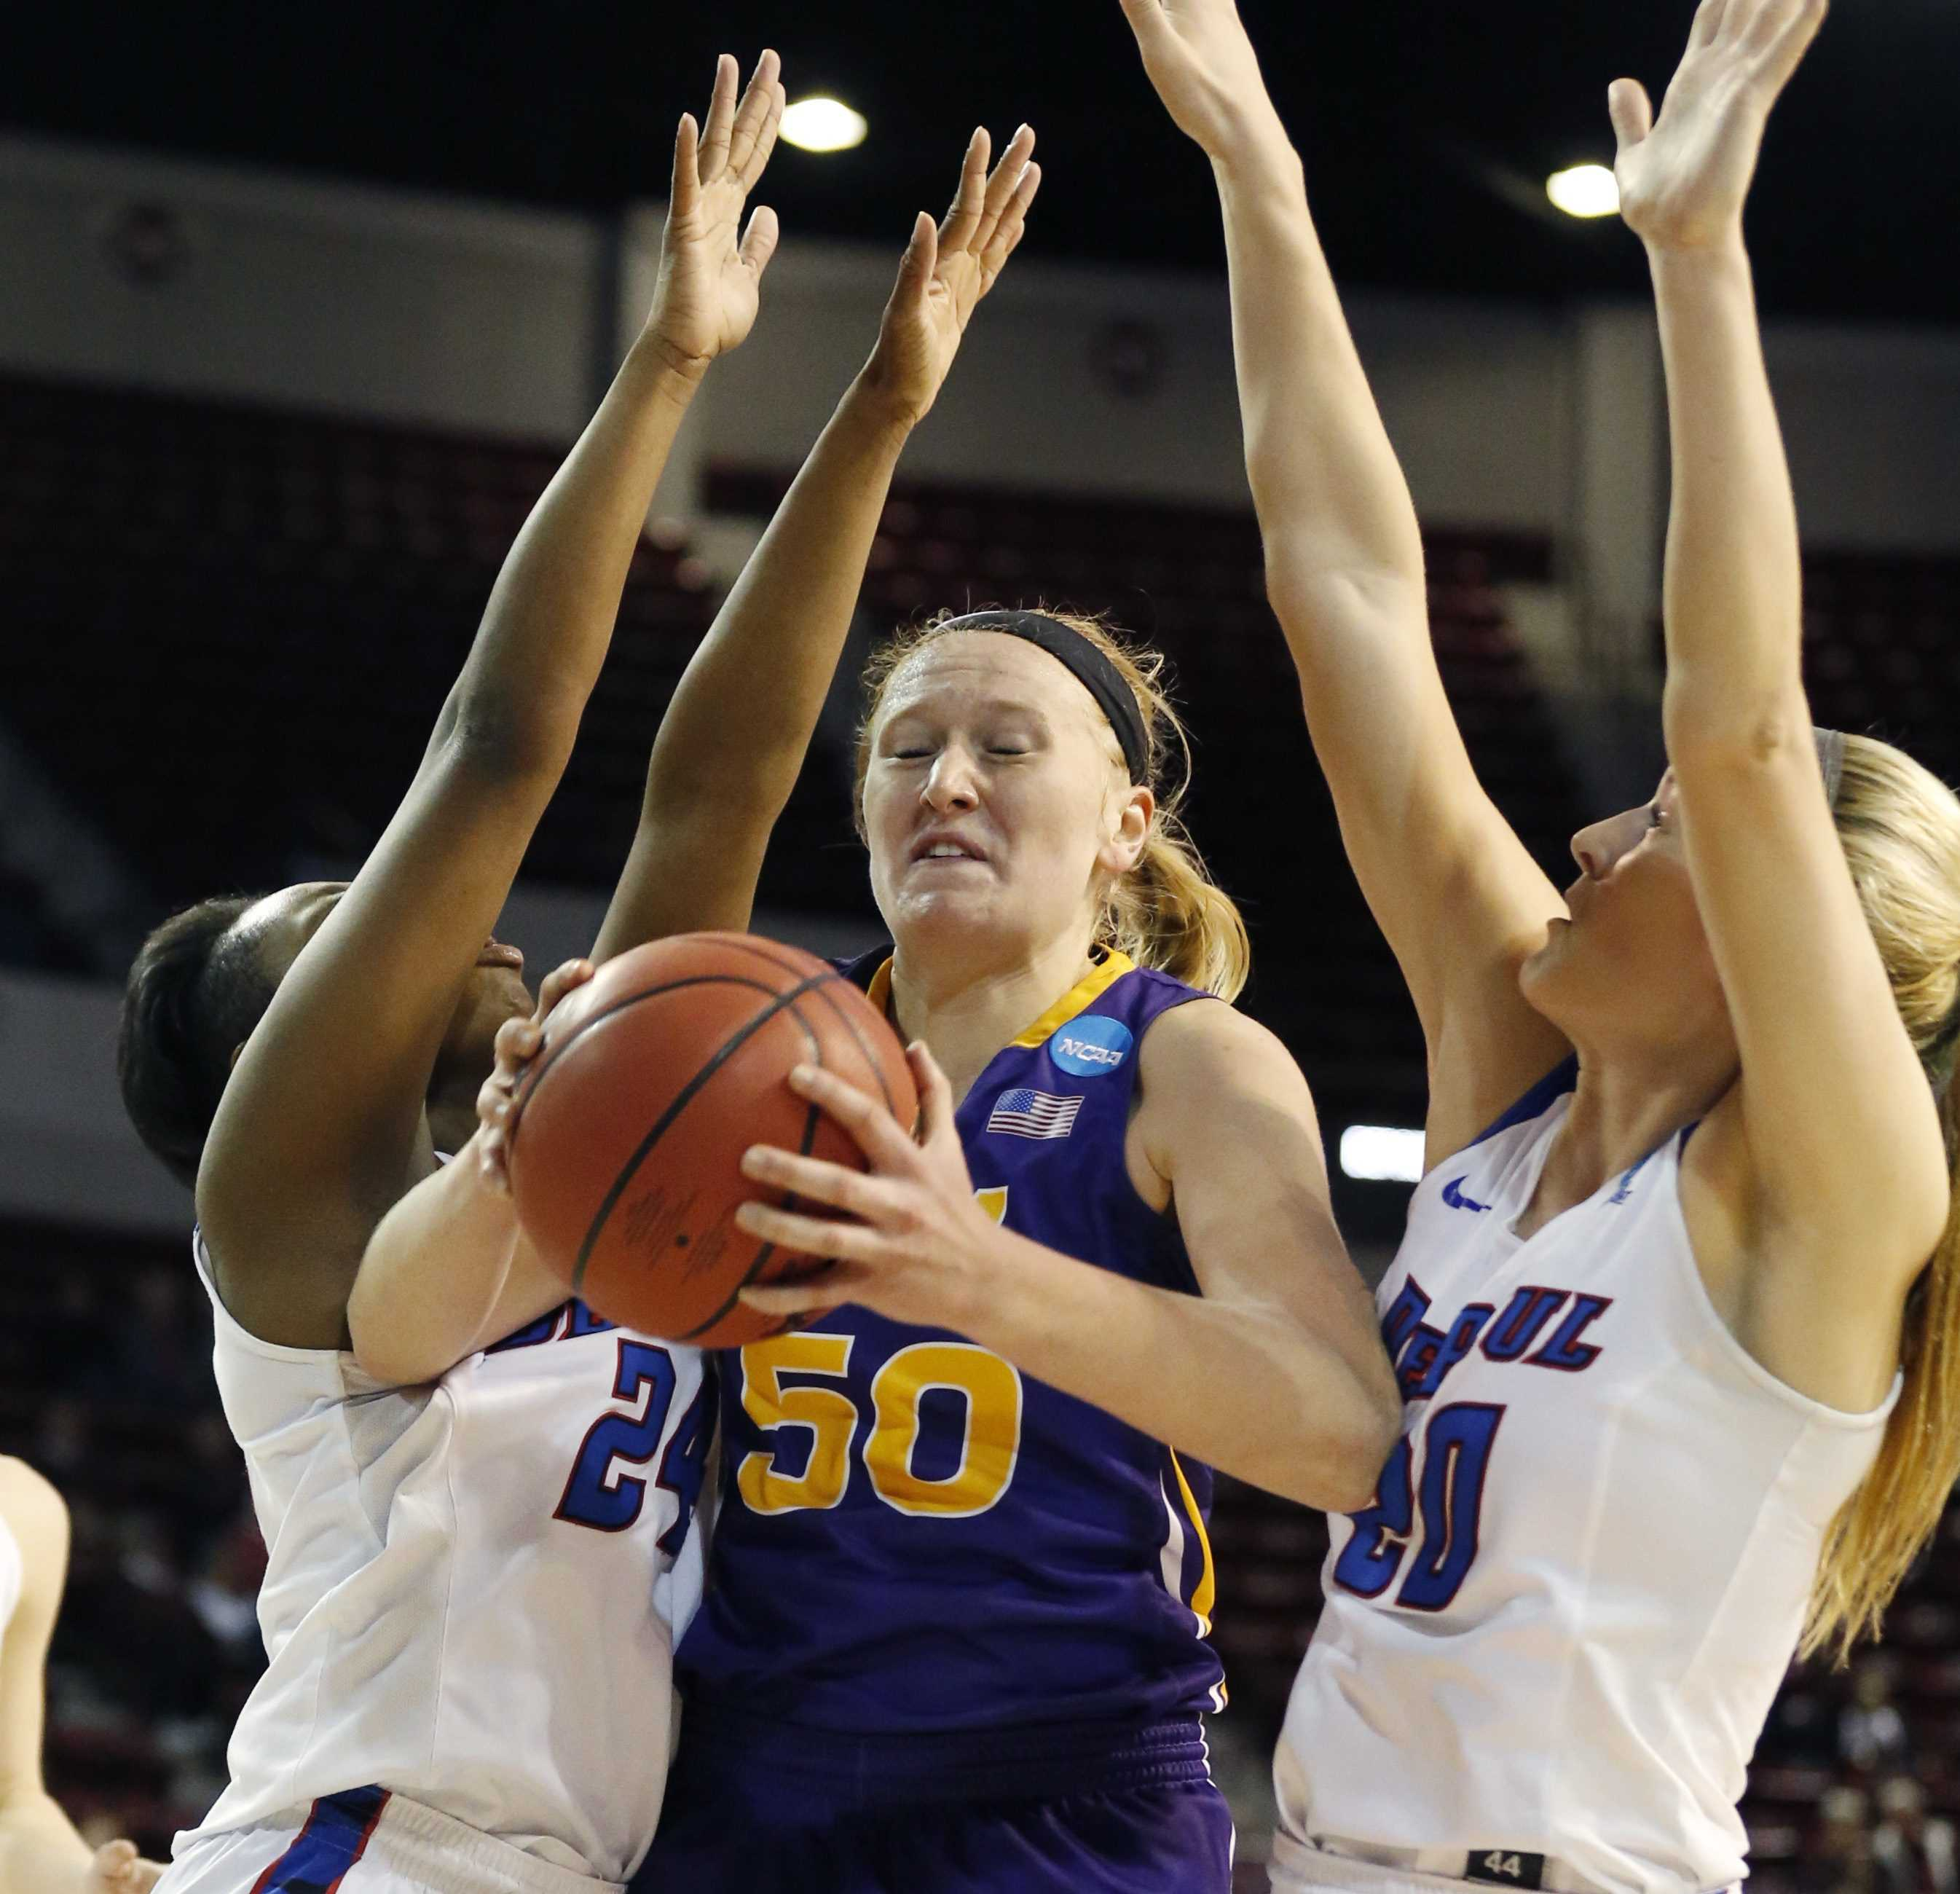 Northern Iowa forward Megan Maahs (50) pulls down a rebound between two DePaul defenders during the first half of a first-round game in the women's NCAA college basketball tournament in Starkville, Miss., Friday, March 17, 2017. (AP Photo/Rogelio V. Solis)